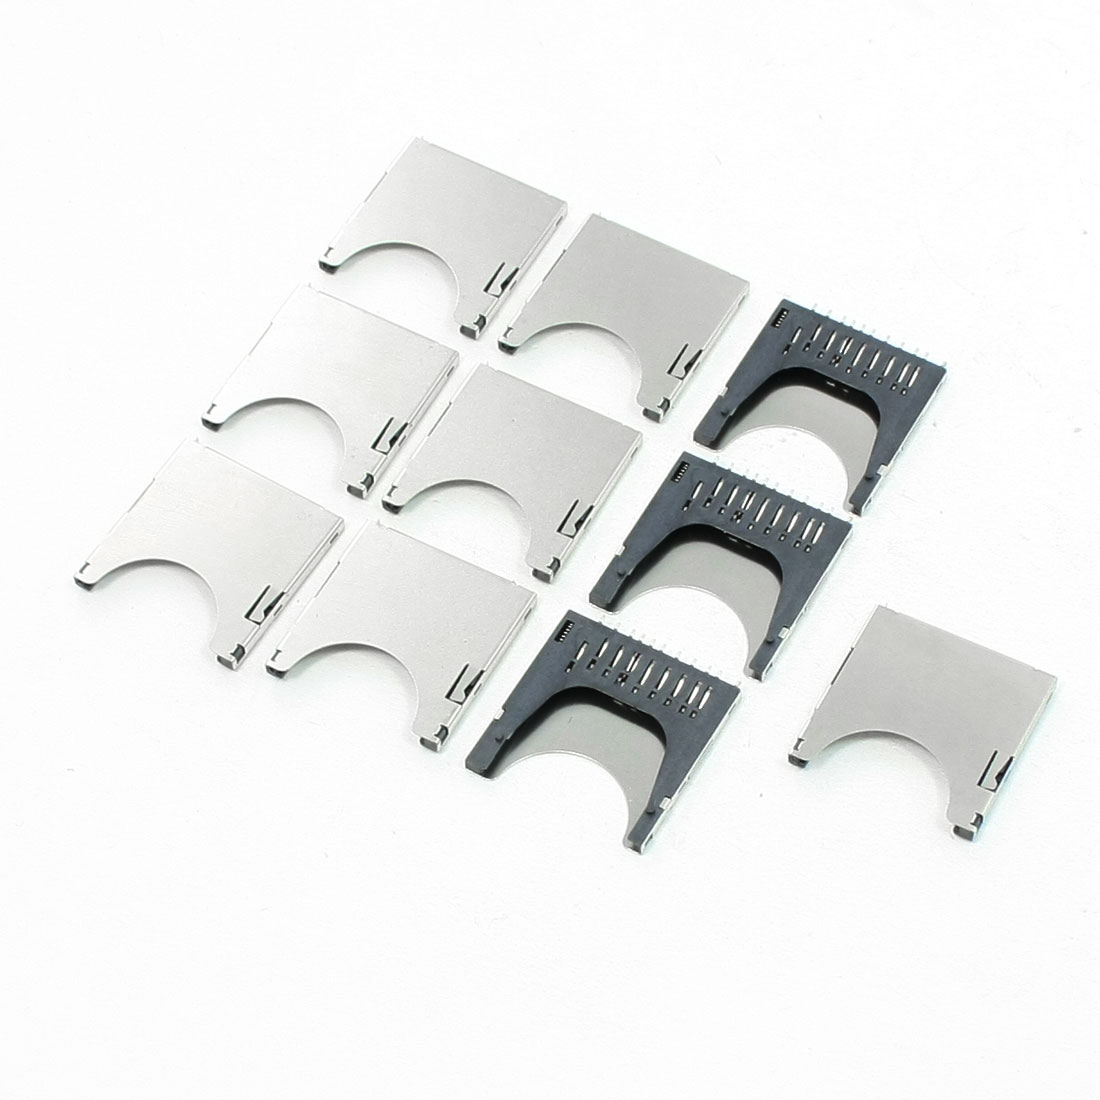 10 Pcs 29mm Long Spring Loaded SD Memory Card Sockets Slots